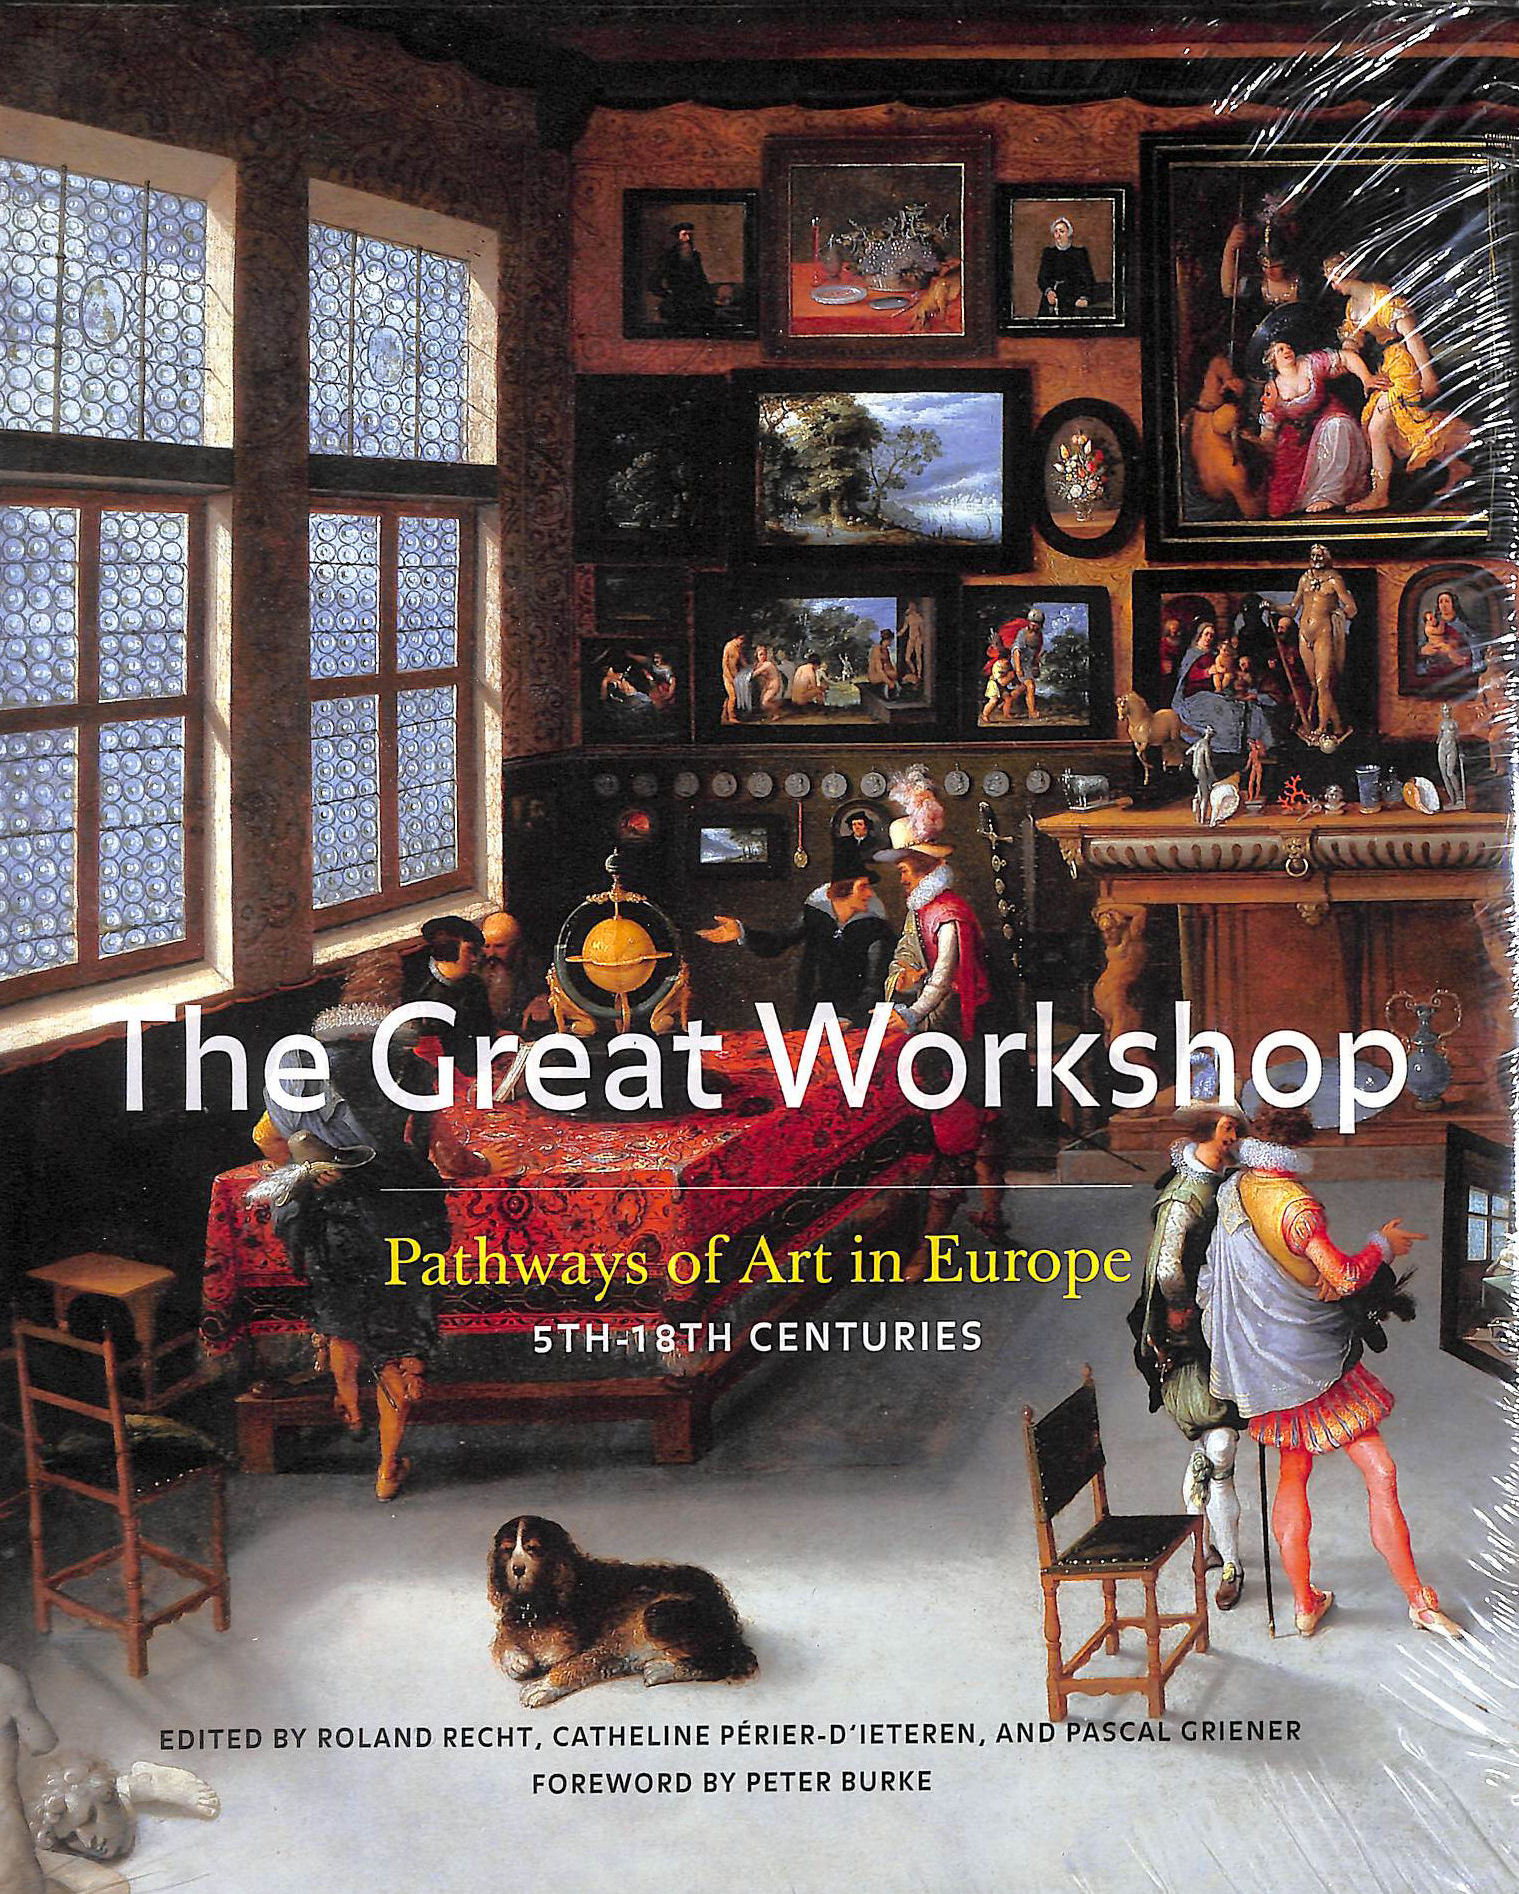 Image for The Great Workshop:Pathways f Art in Eurpoe 5th-18th Centuries